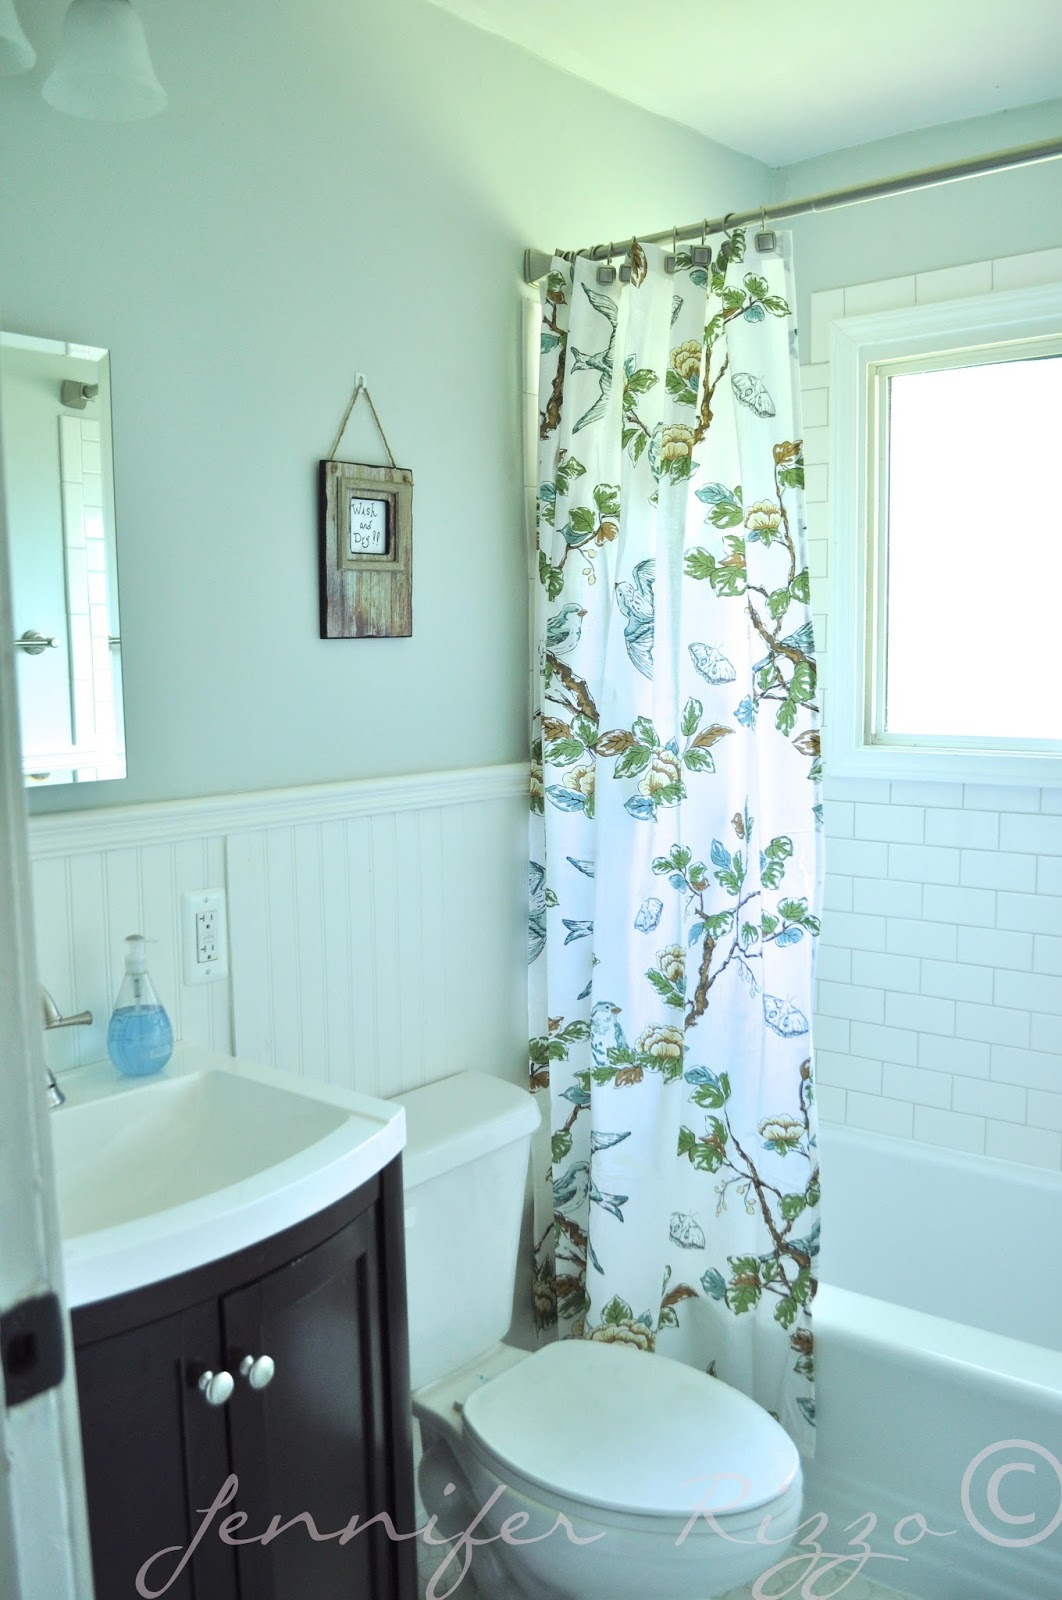 34 magnificent pictures and ideas of vintage bathroom ...